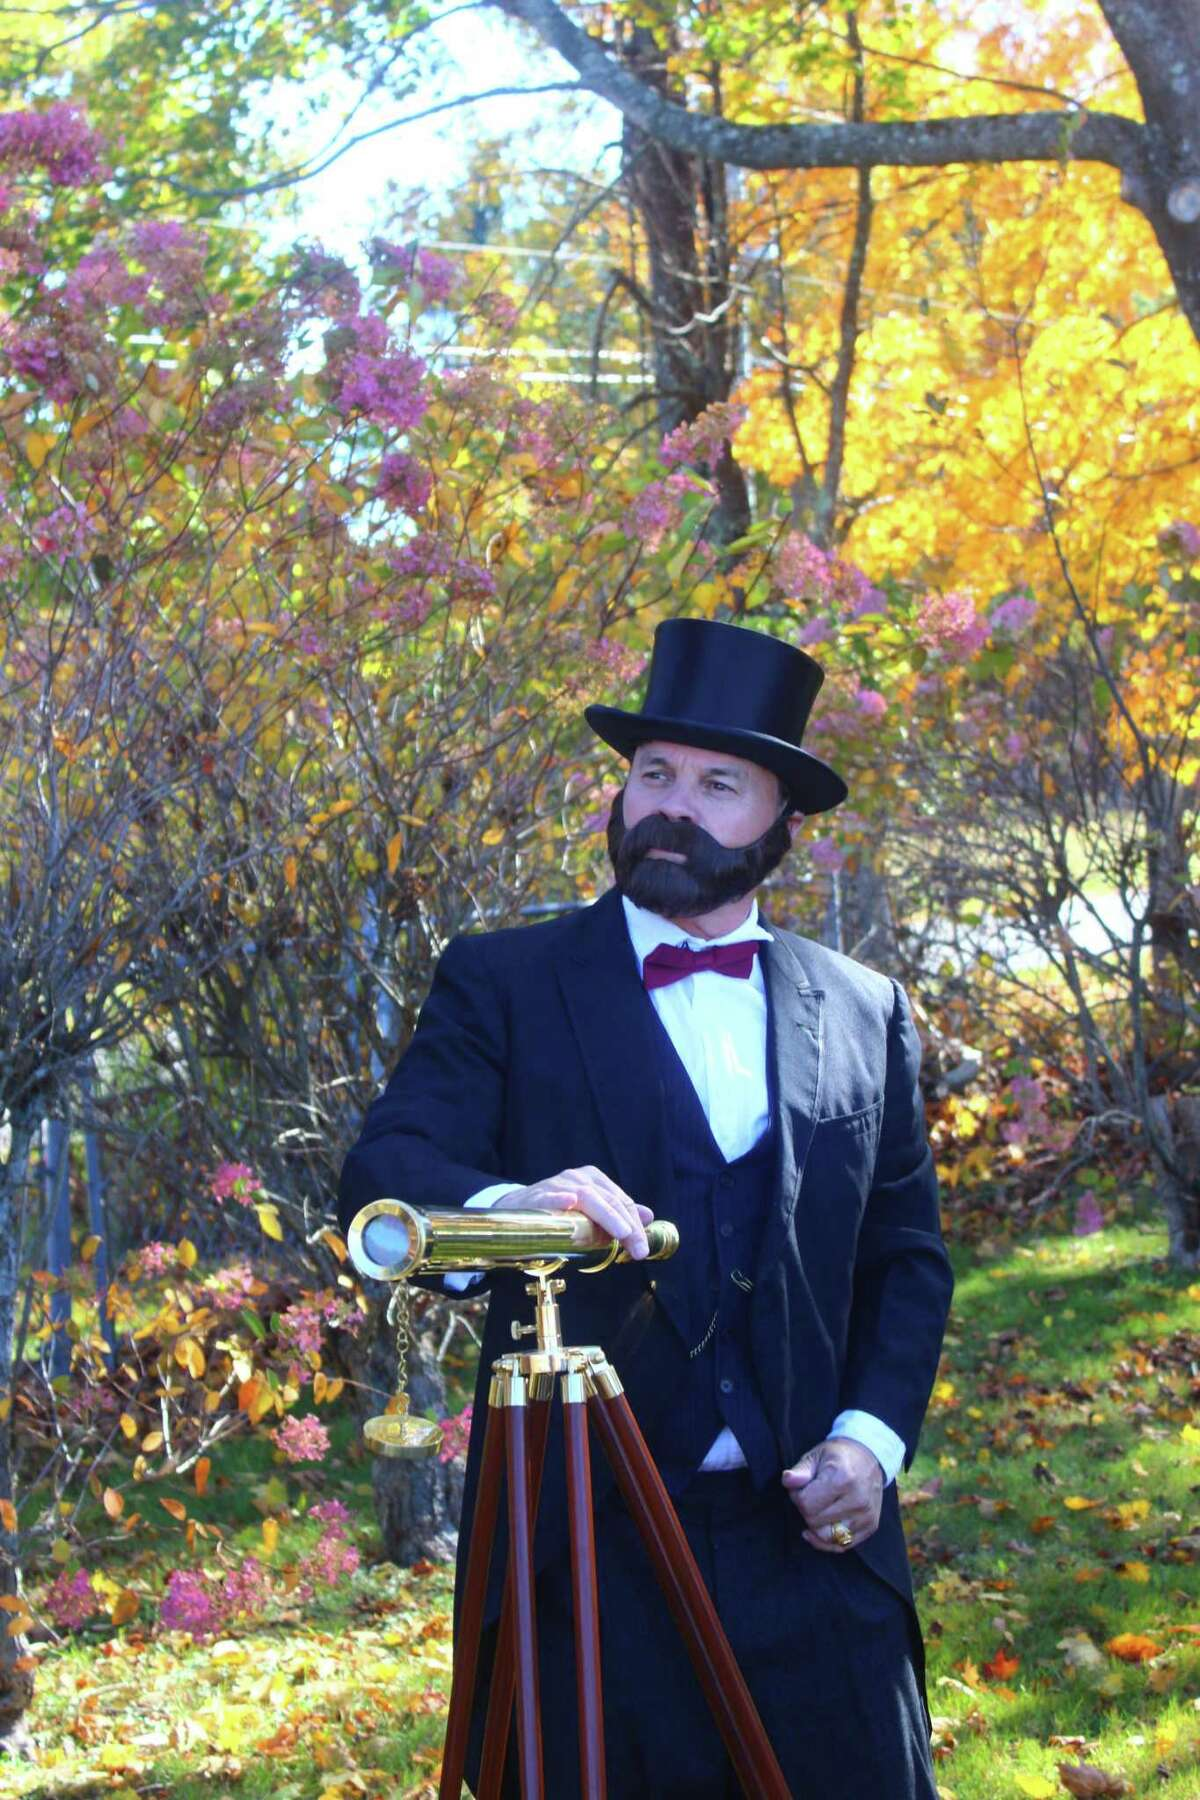 Historian and reenactor Kevin Titus dressed up as astronomer Asphus Hall and held a birthday celebration for him at his grave in Goshen Center Cemetery Oct. 15. Hall was the U.S. Astronomer under President Abraham Lincoln, and is credited with discovering the moons around Mars.